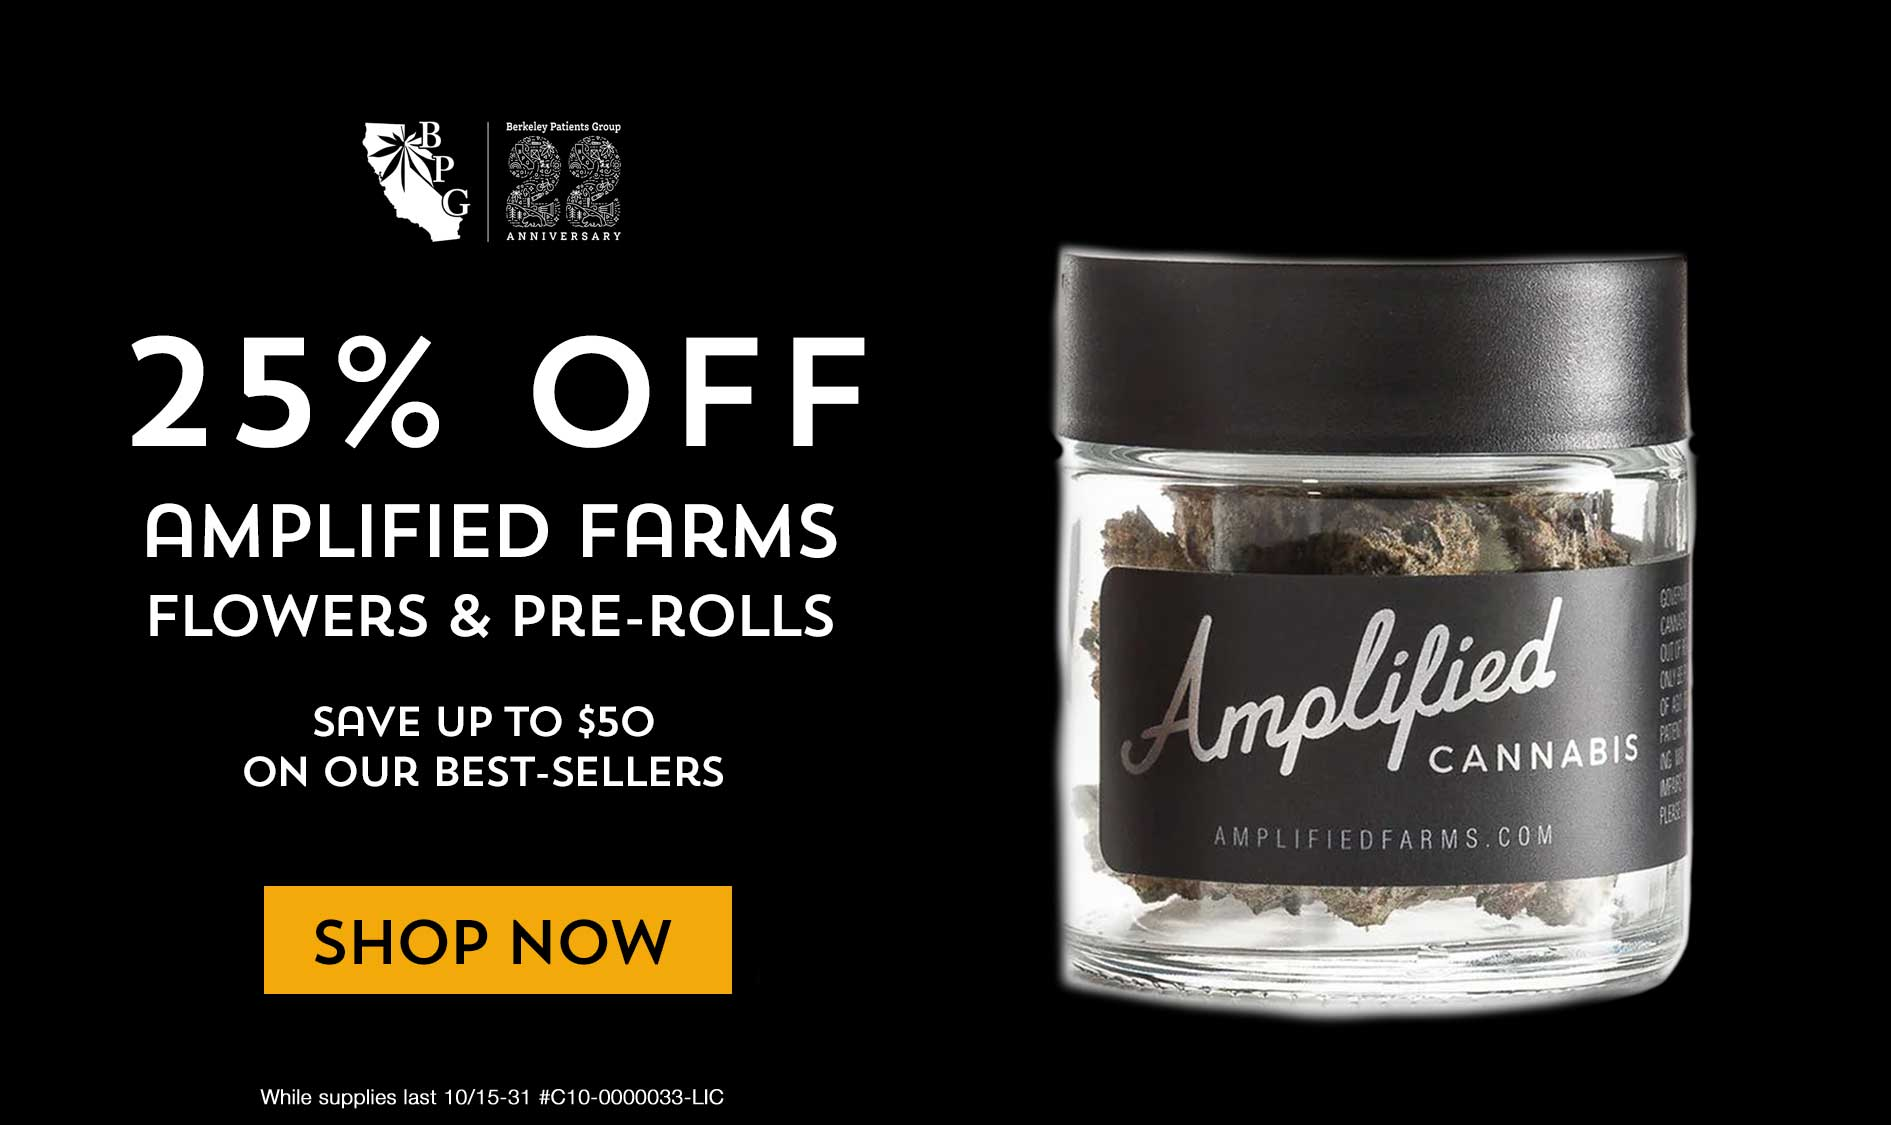 25% off Amplified eighths, half ounces and pre-rolls at BPG while supplies last,